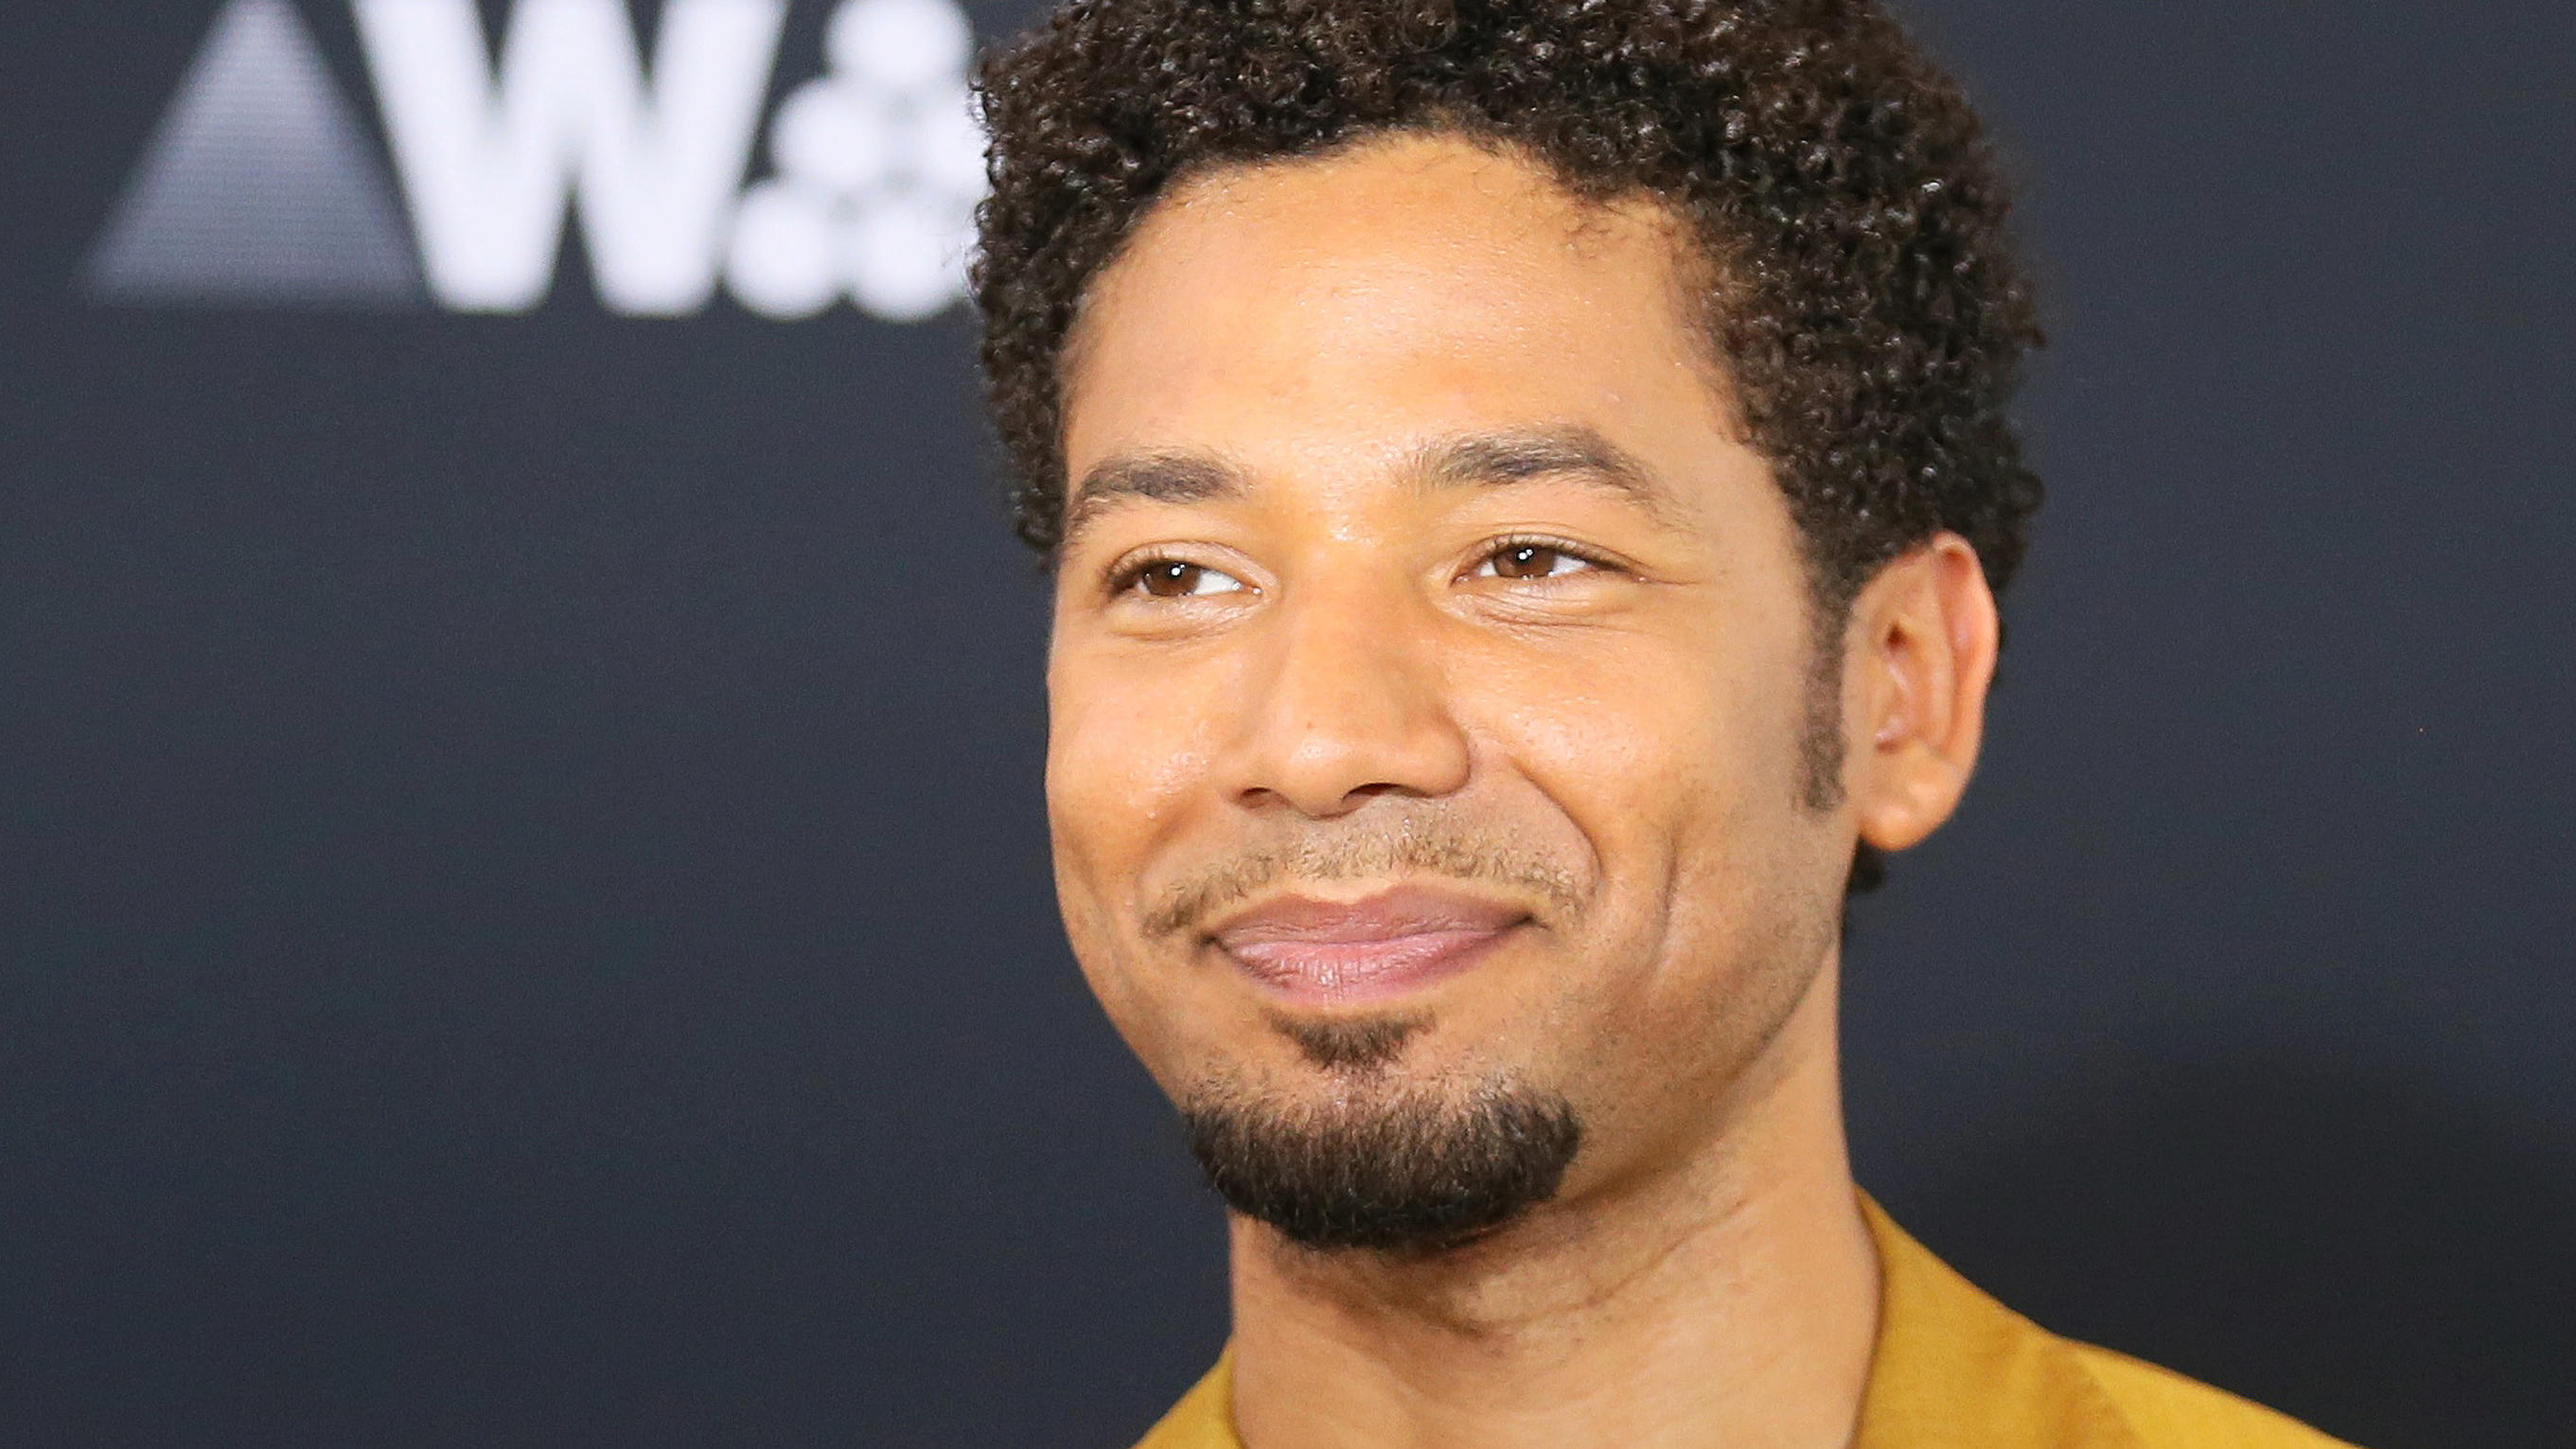 FILE PHOTO: 2017 BET Awards – Photo Room – Los Angeles, California, U.S., 25/06/2017 - Jussie Smollett. REUTERS/Danny Moloshok/File Photo